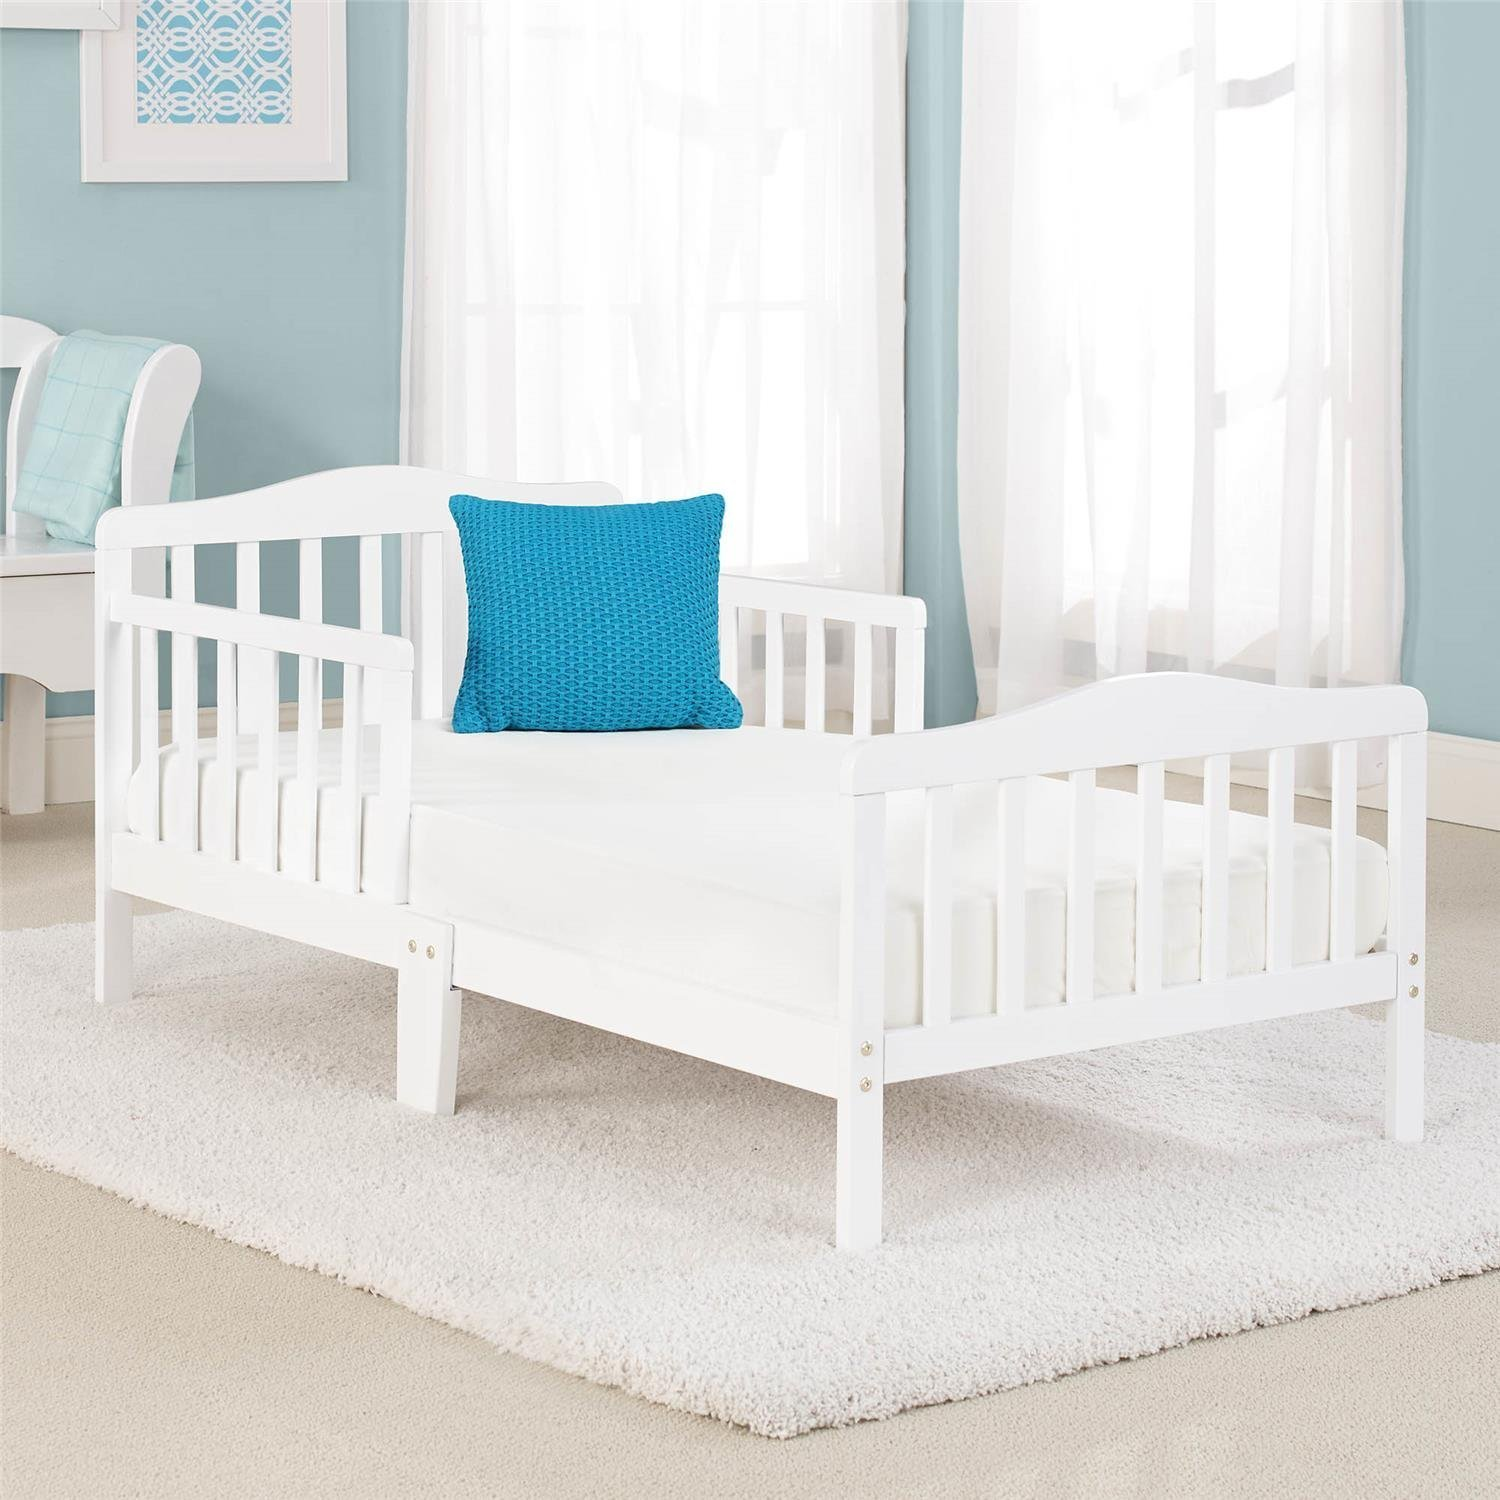 Big Oshi Contemporary Design Toddler & Kids Bed - Sturdy Wooden Frame for Extra Safety - Modern Slat Design - Great for Boys and Girls - Full Bed Frame With Headboard, in White by Big Oshi